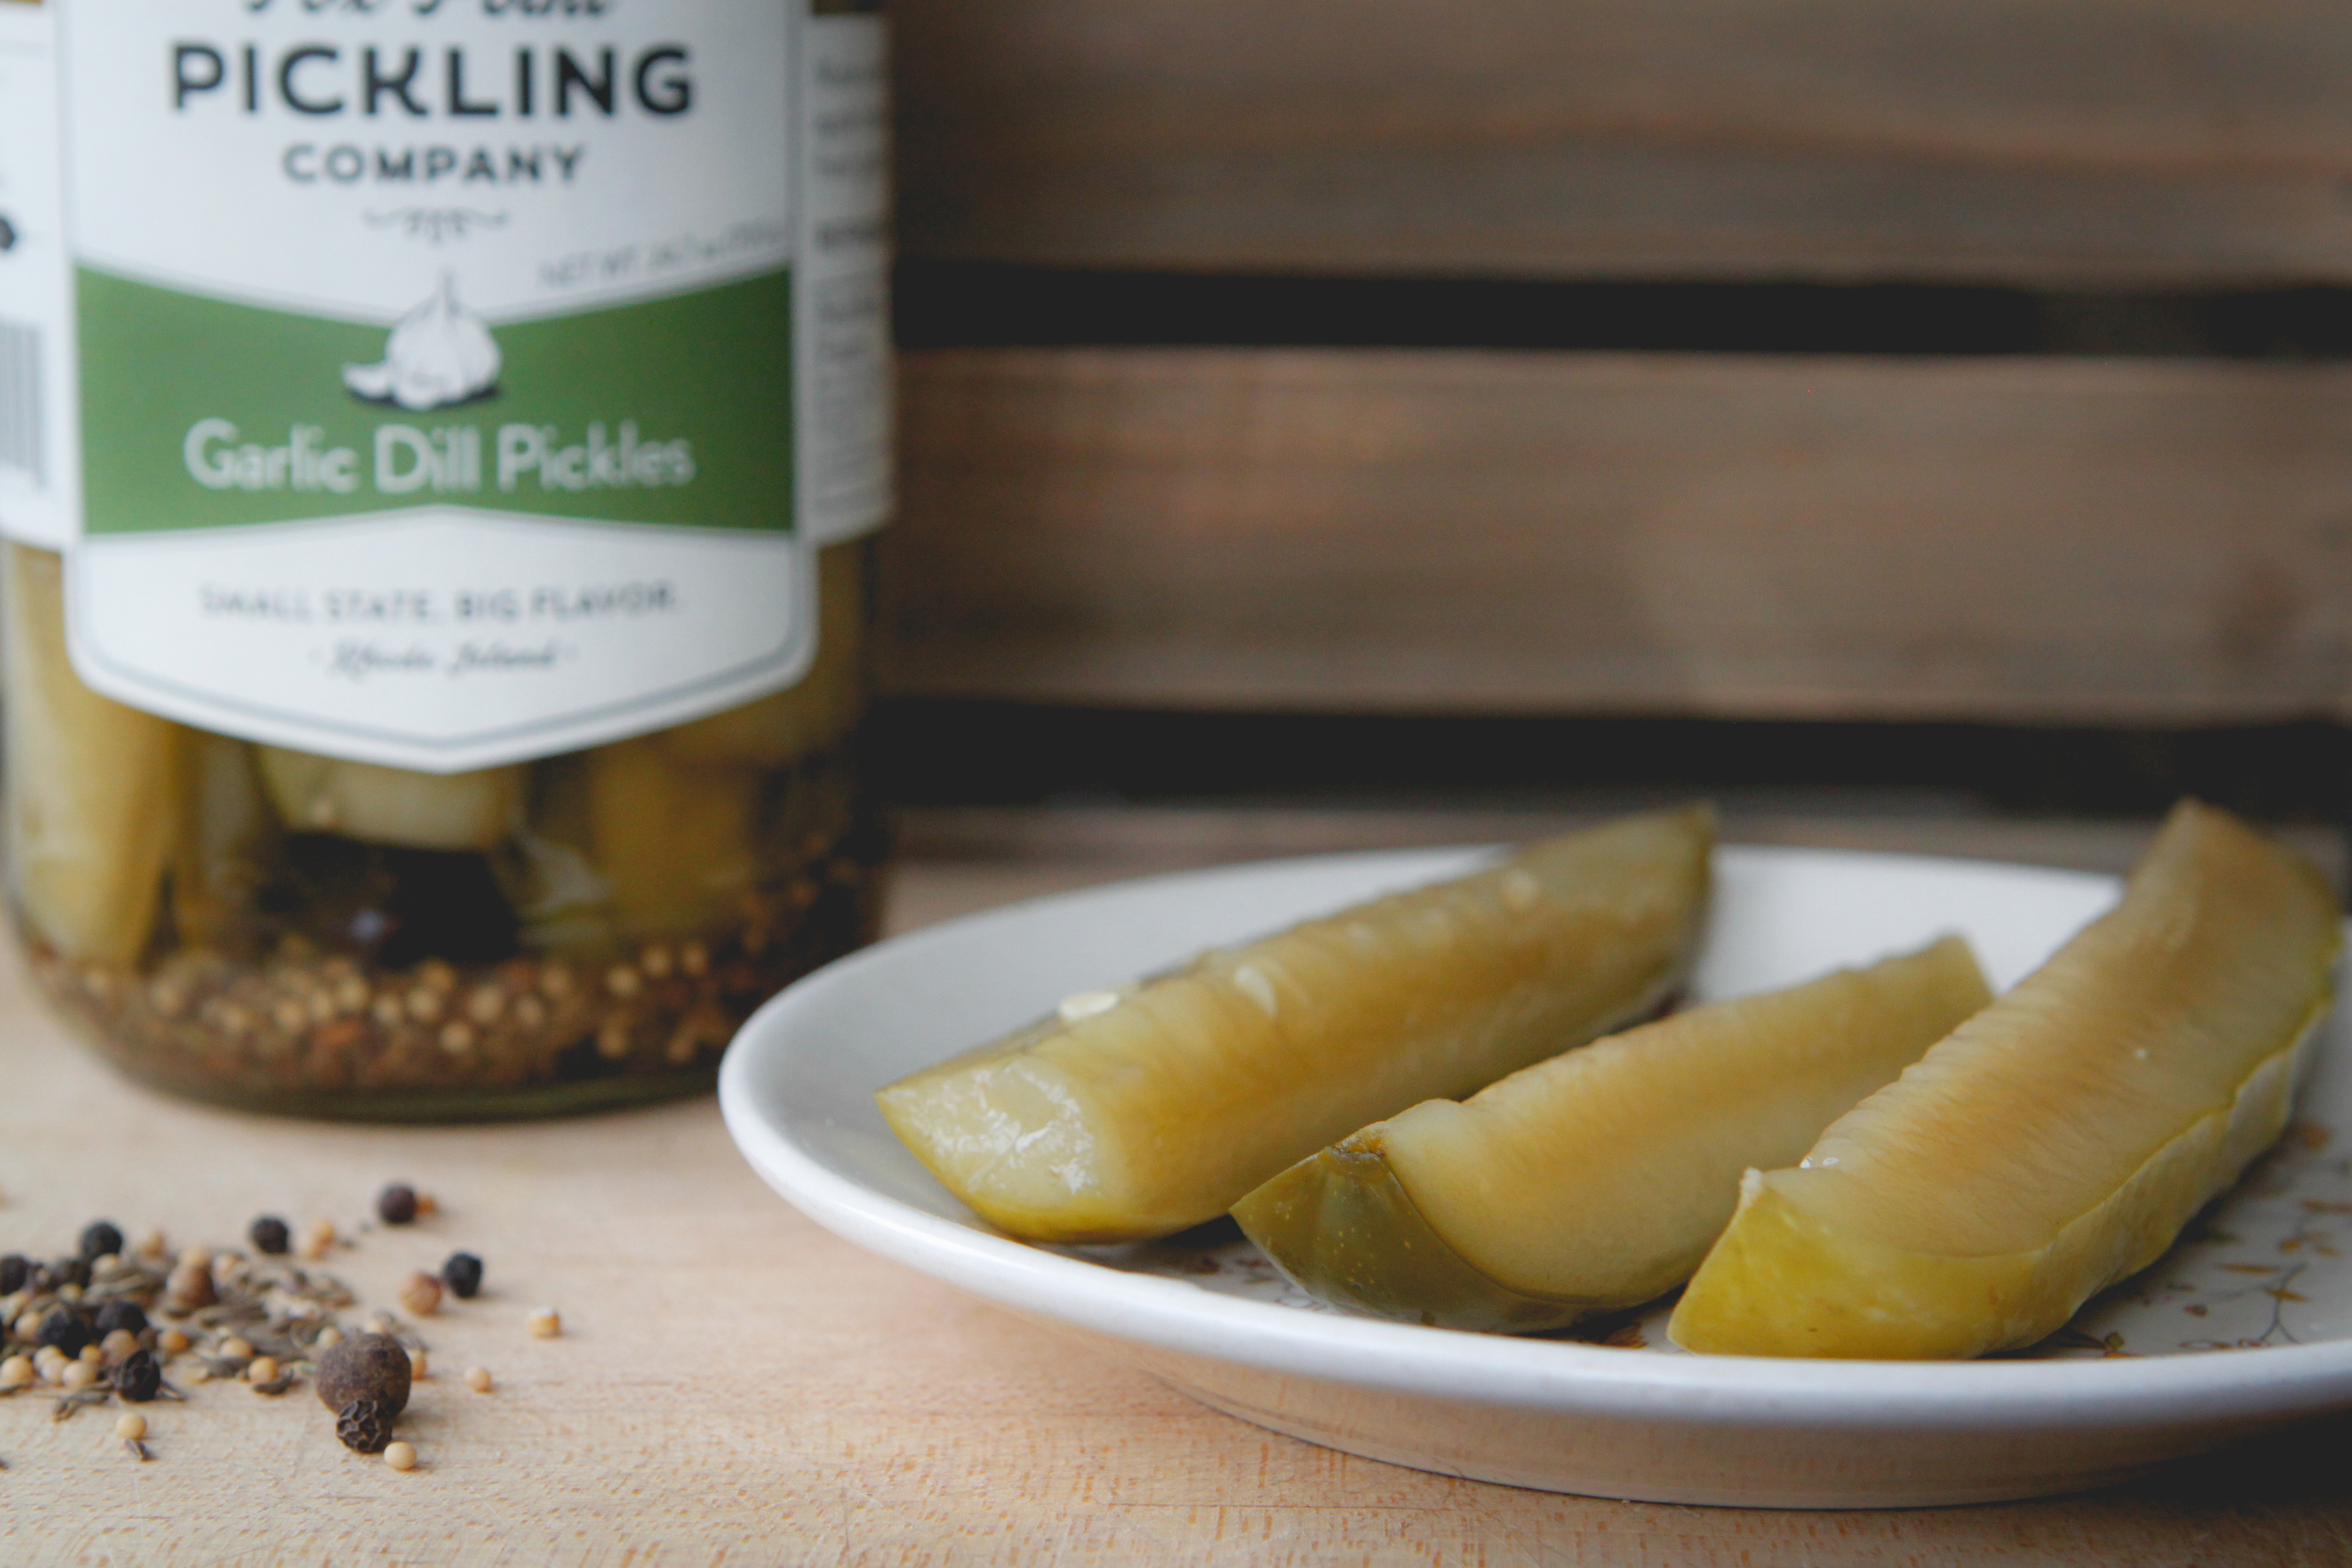 fox-point-pickles-hp-about.jpg